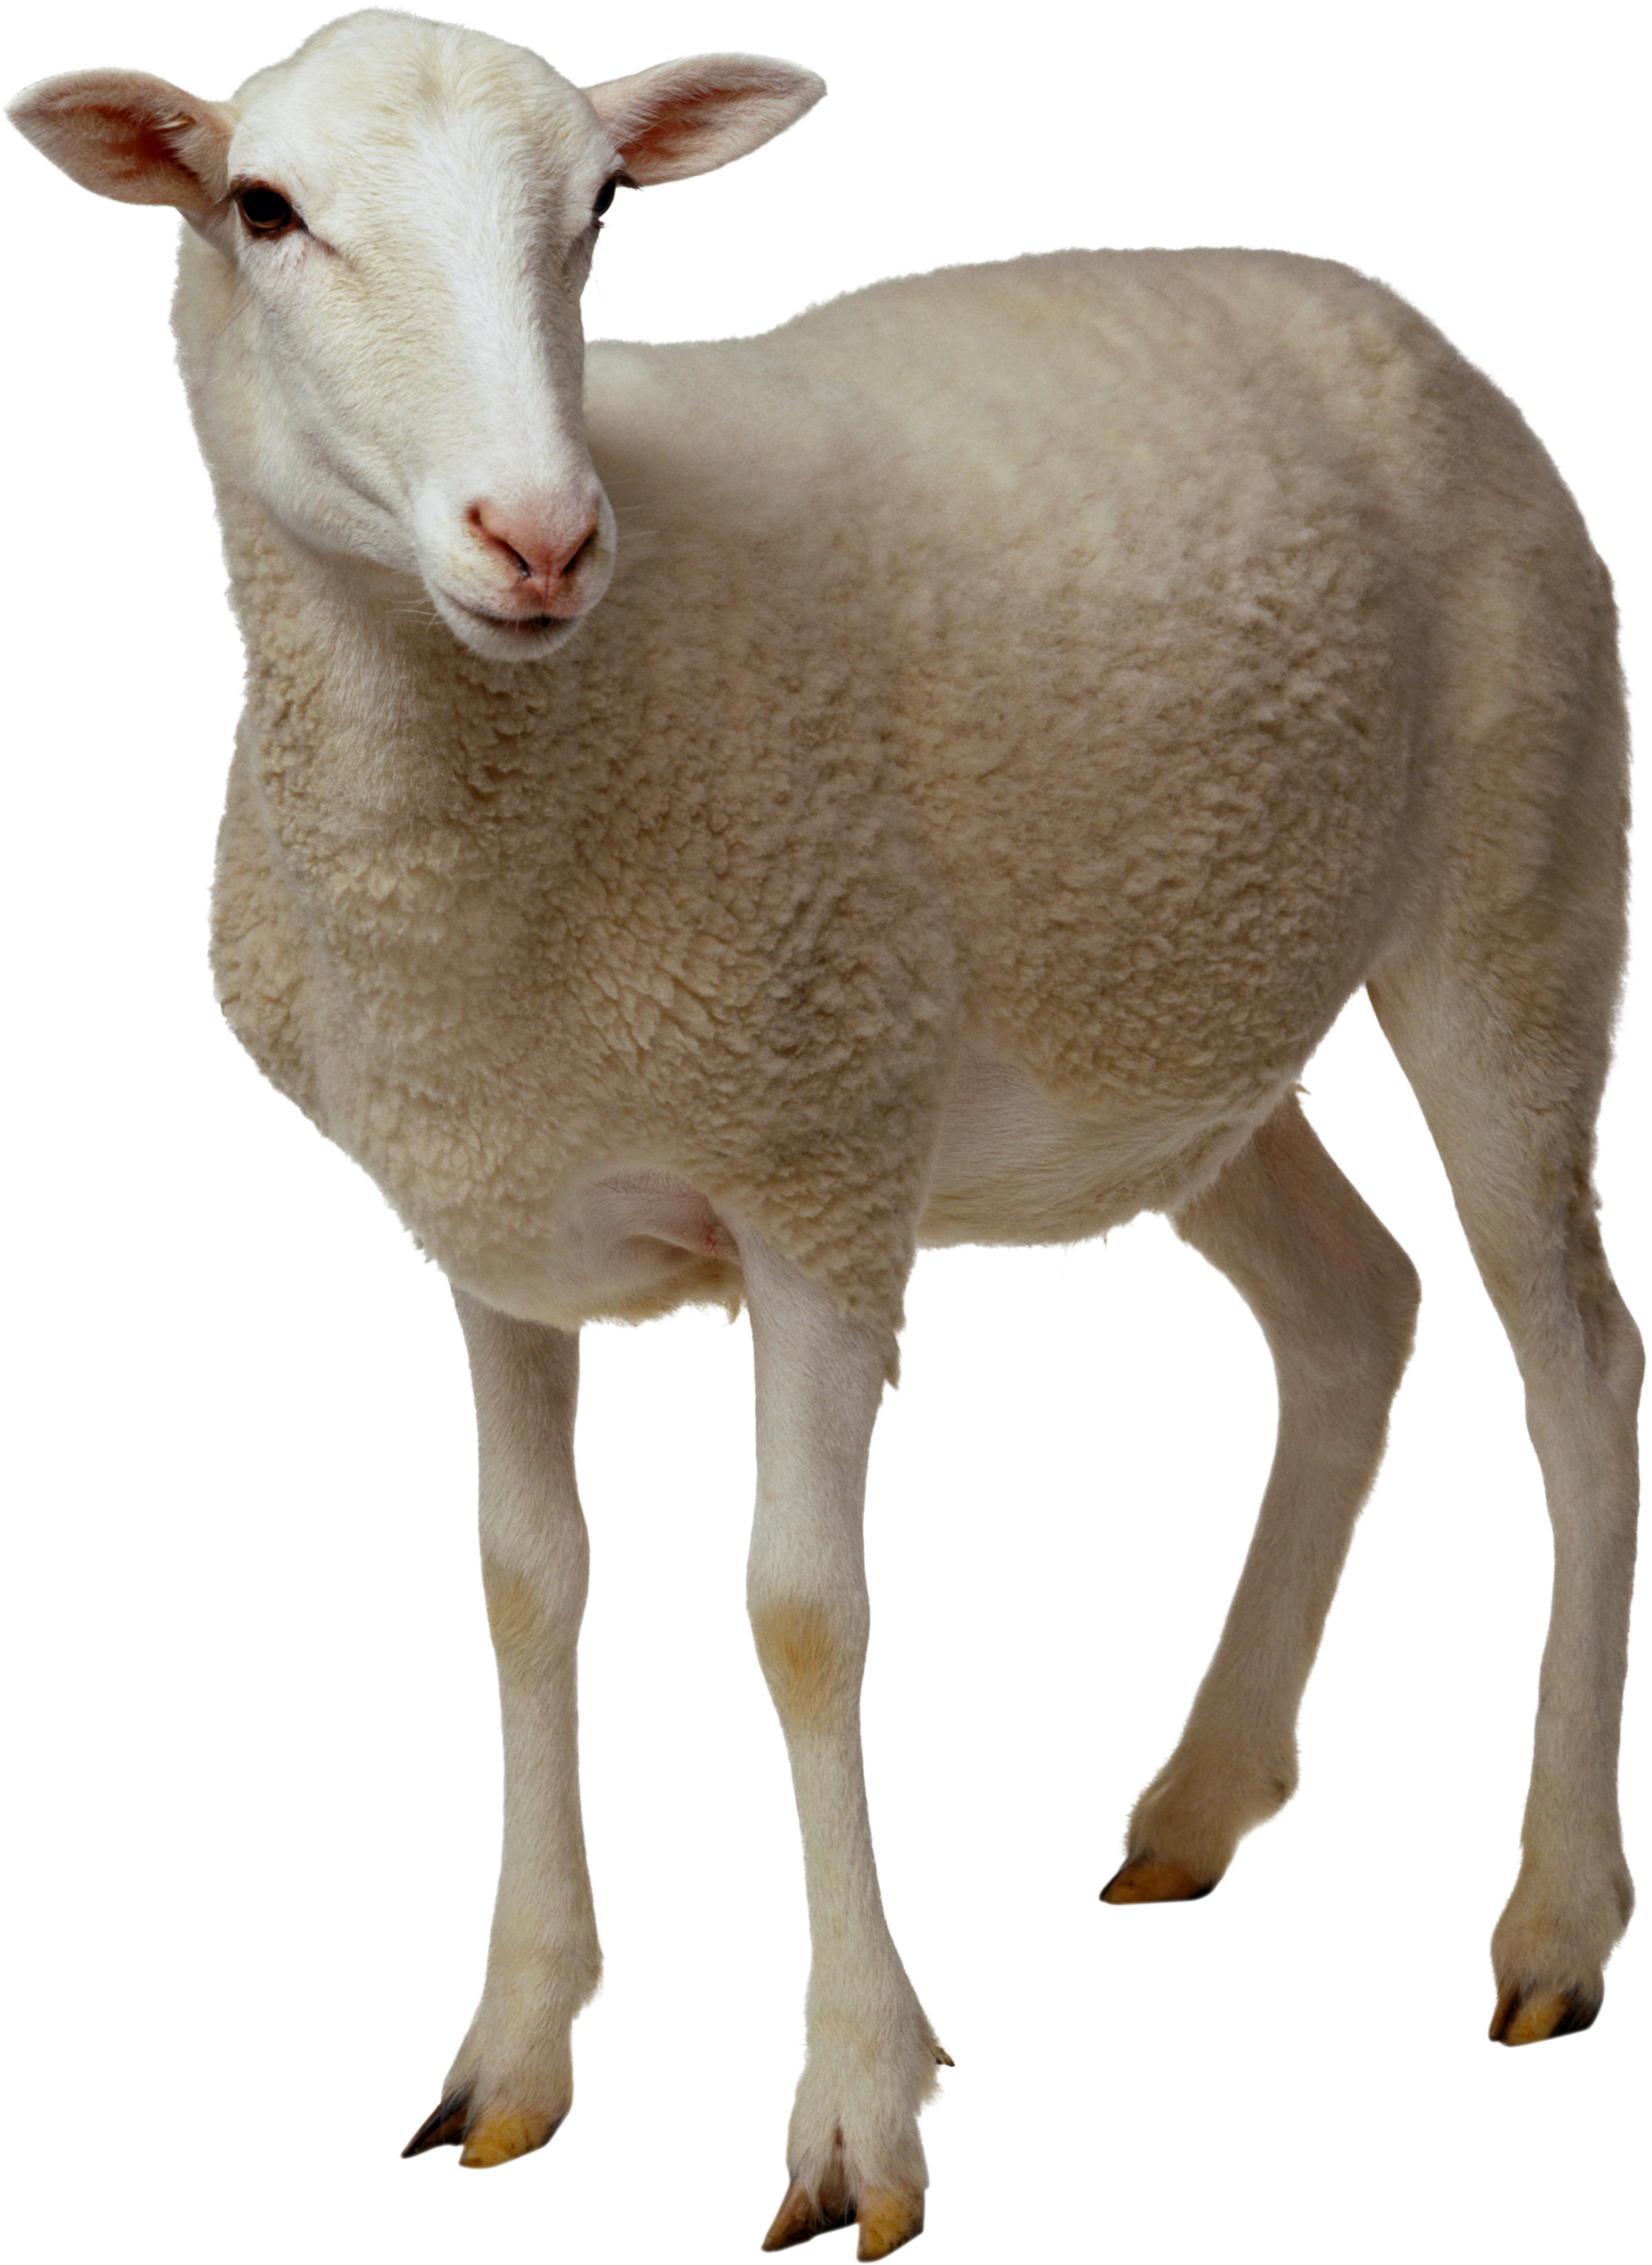 Screaming goat png. Sheep transparent professional images